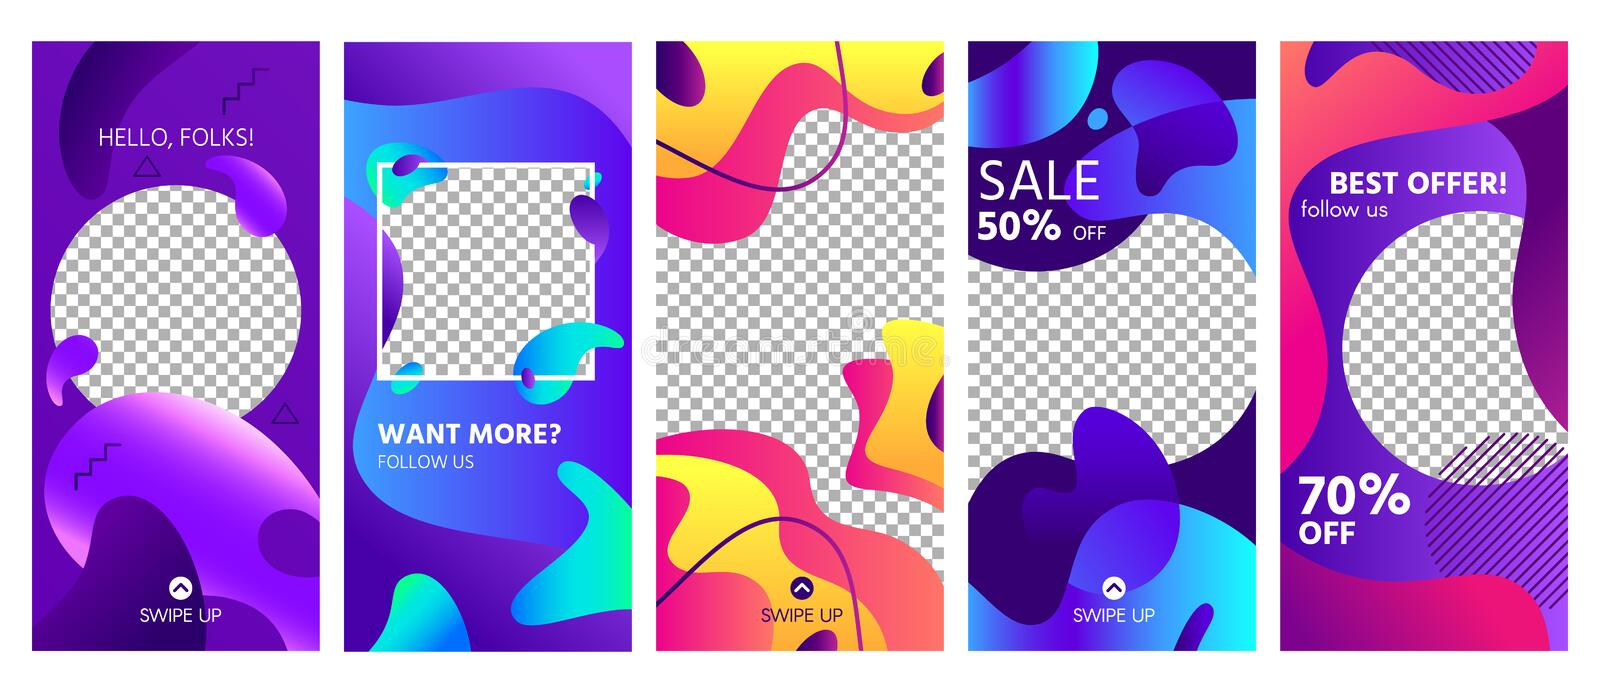 Fluid shapes stories template. Colorful abstract shape social media story posts trends, photo frames templates layout vector illustration